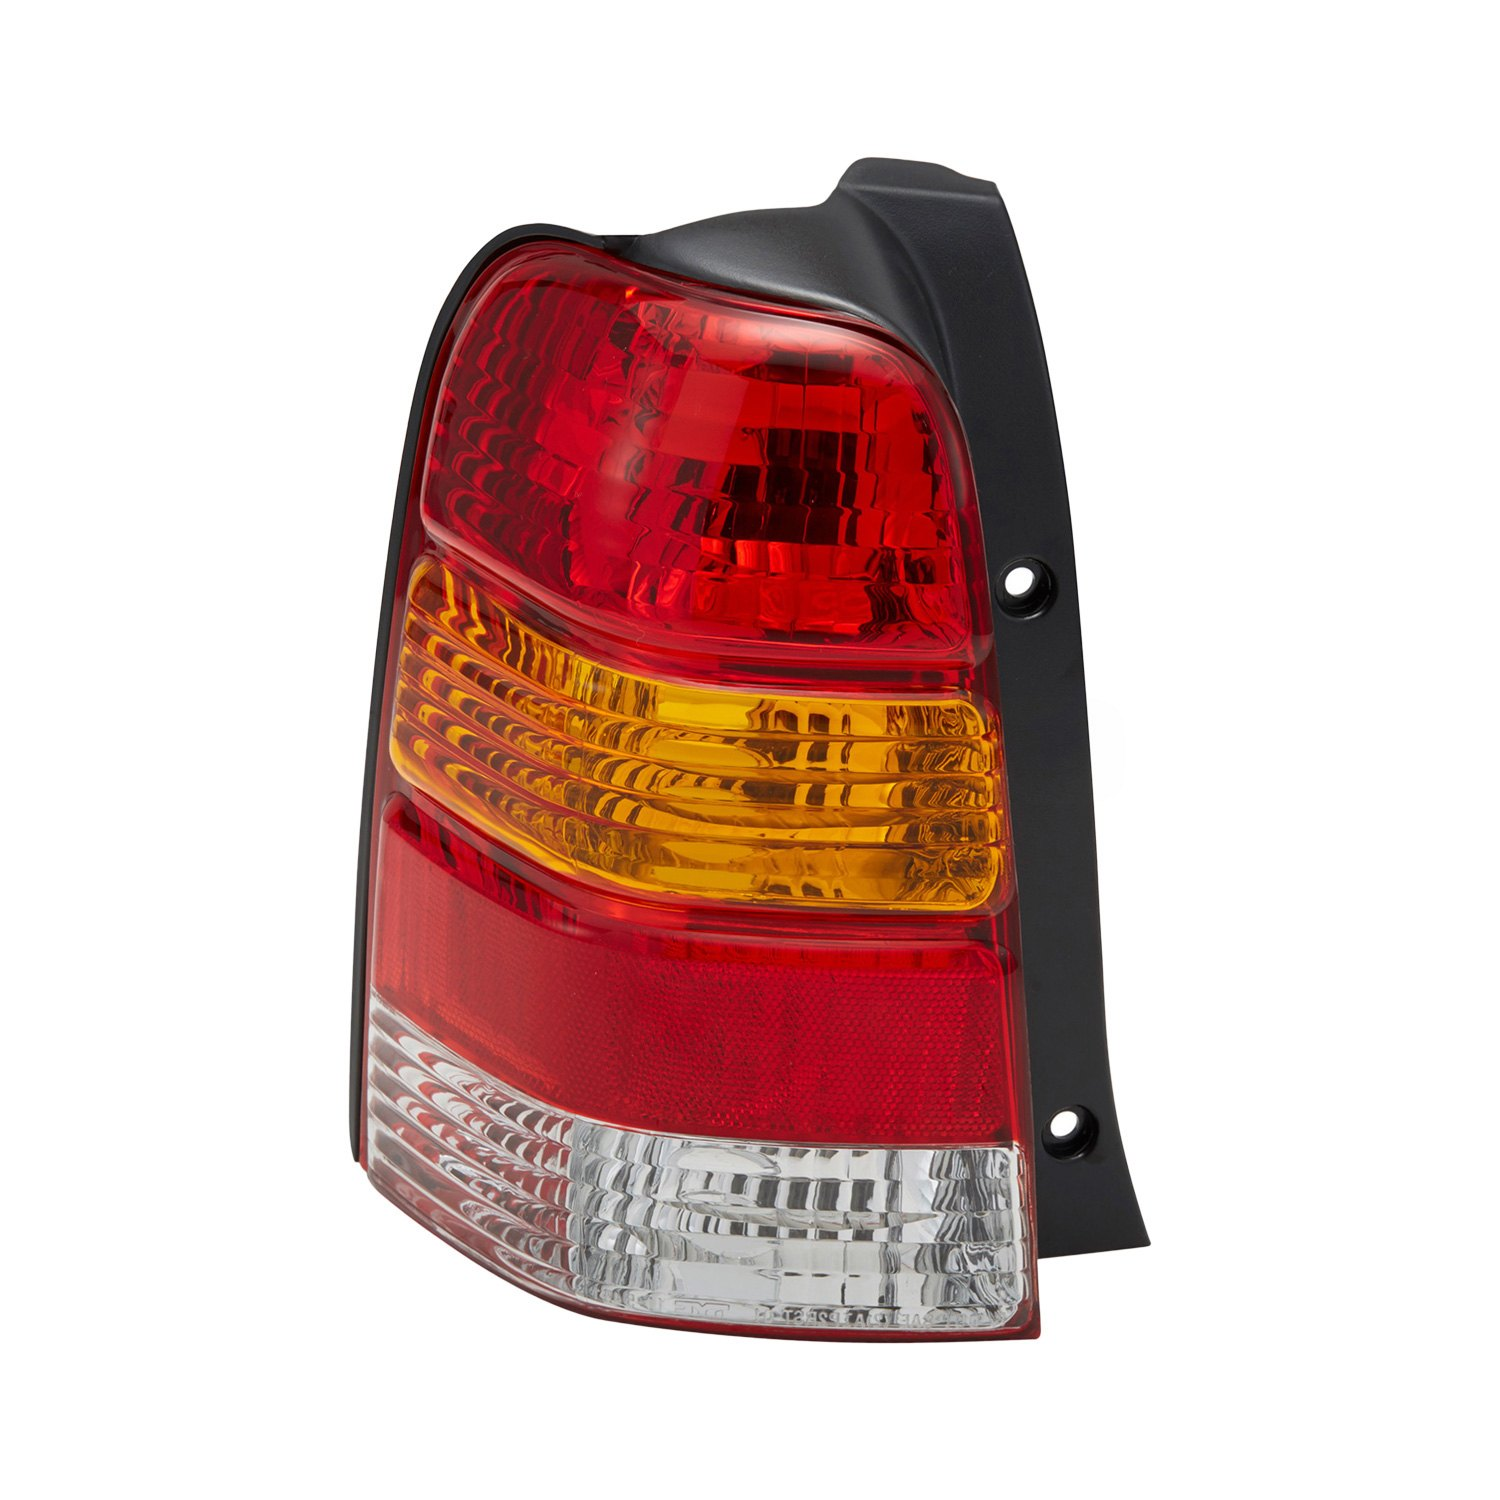 Tyc ford escape 2001 2007 replacement tail light